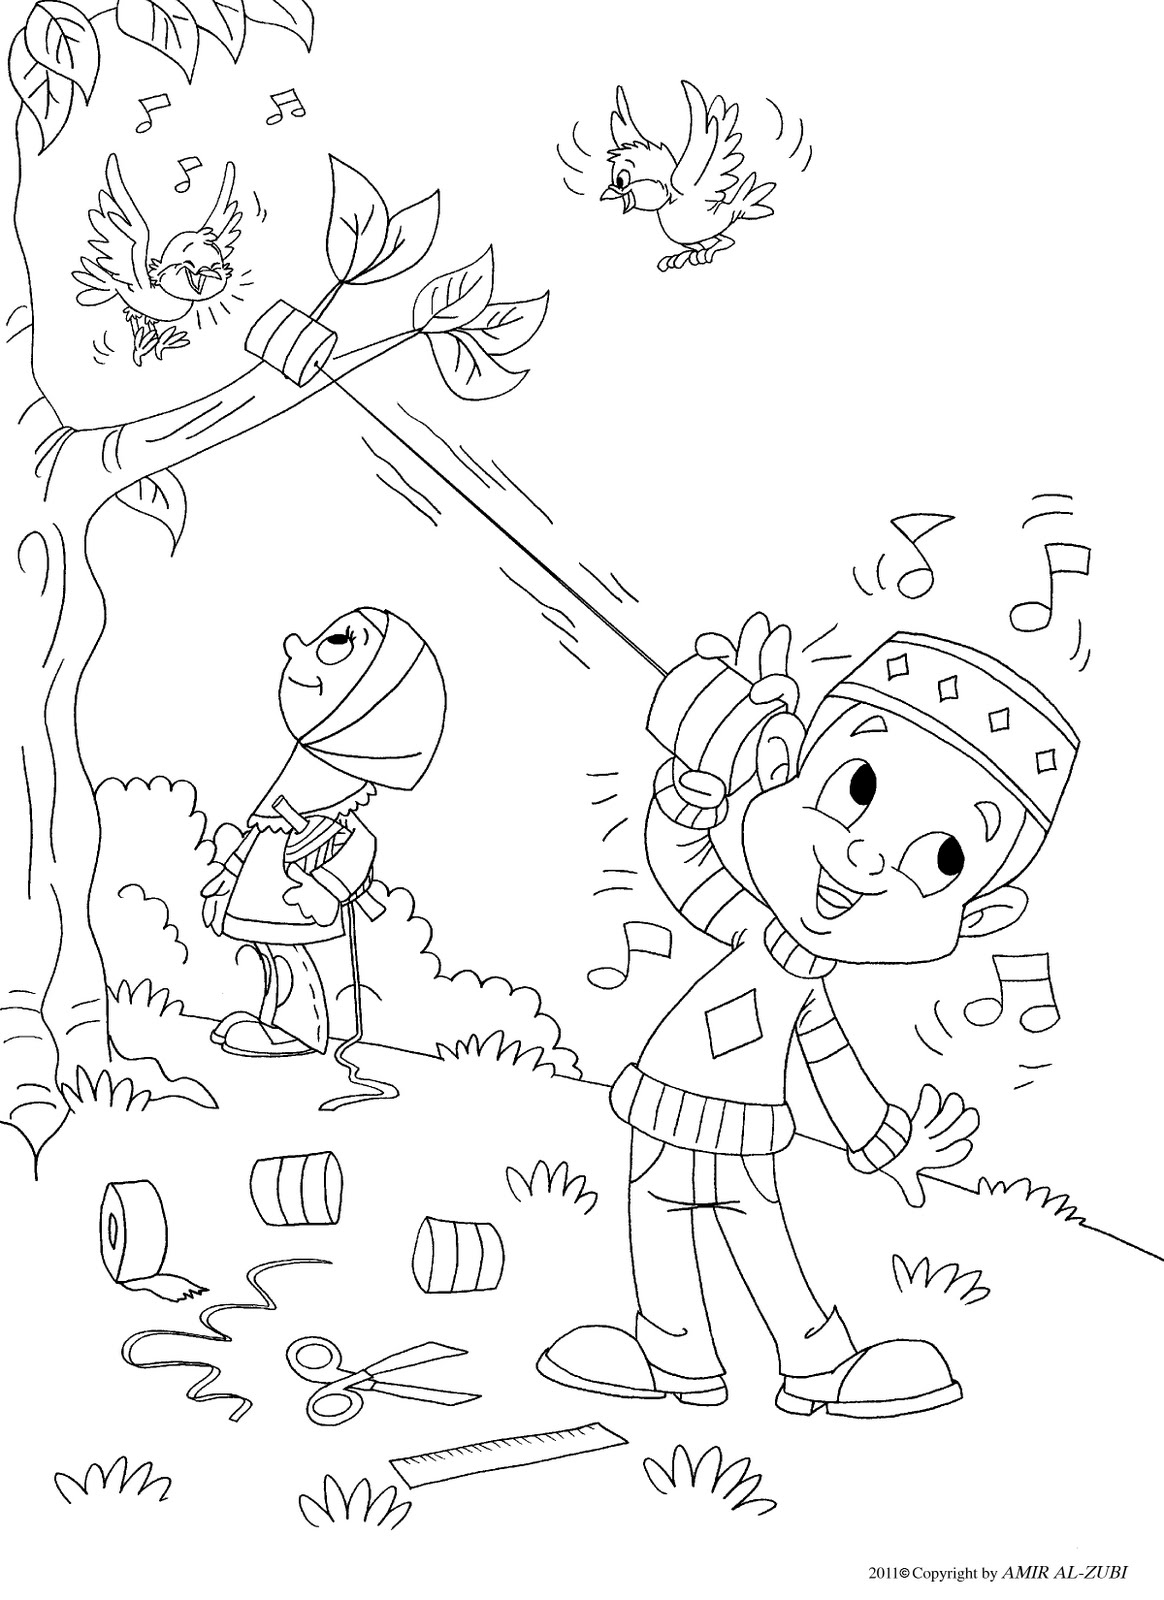 Muslim Coloring Pages And Boys On Pinterest Muslim Colouring Pages